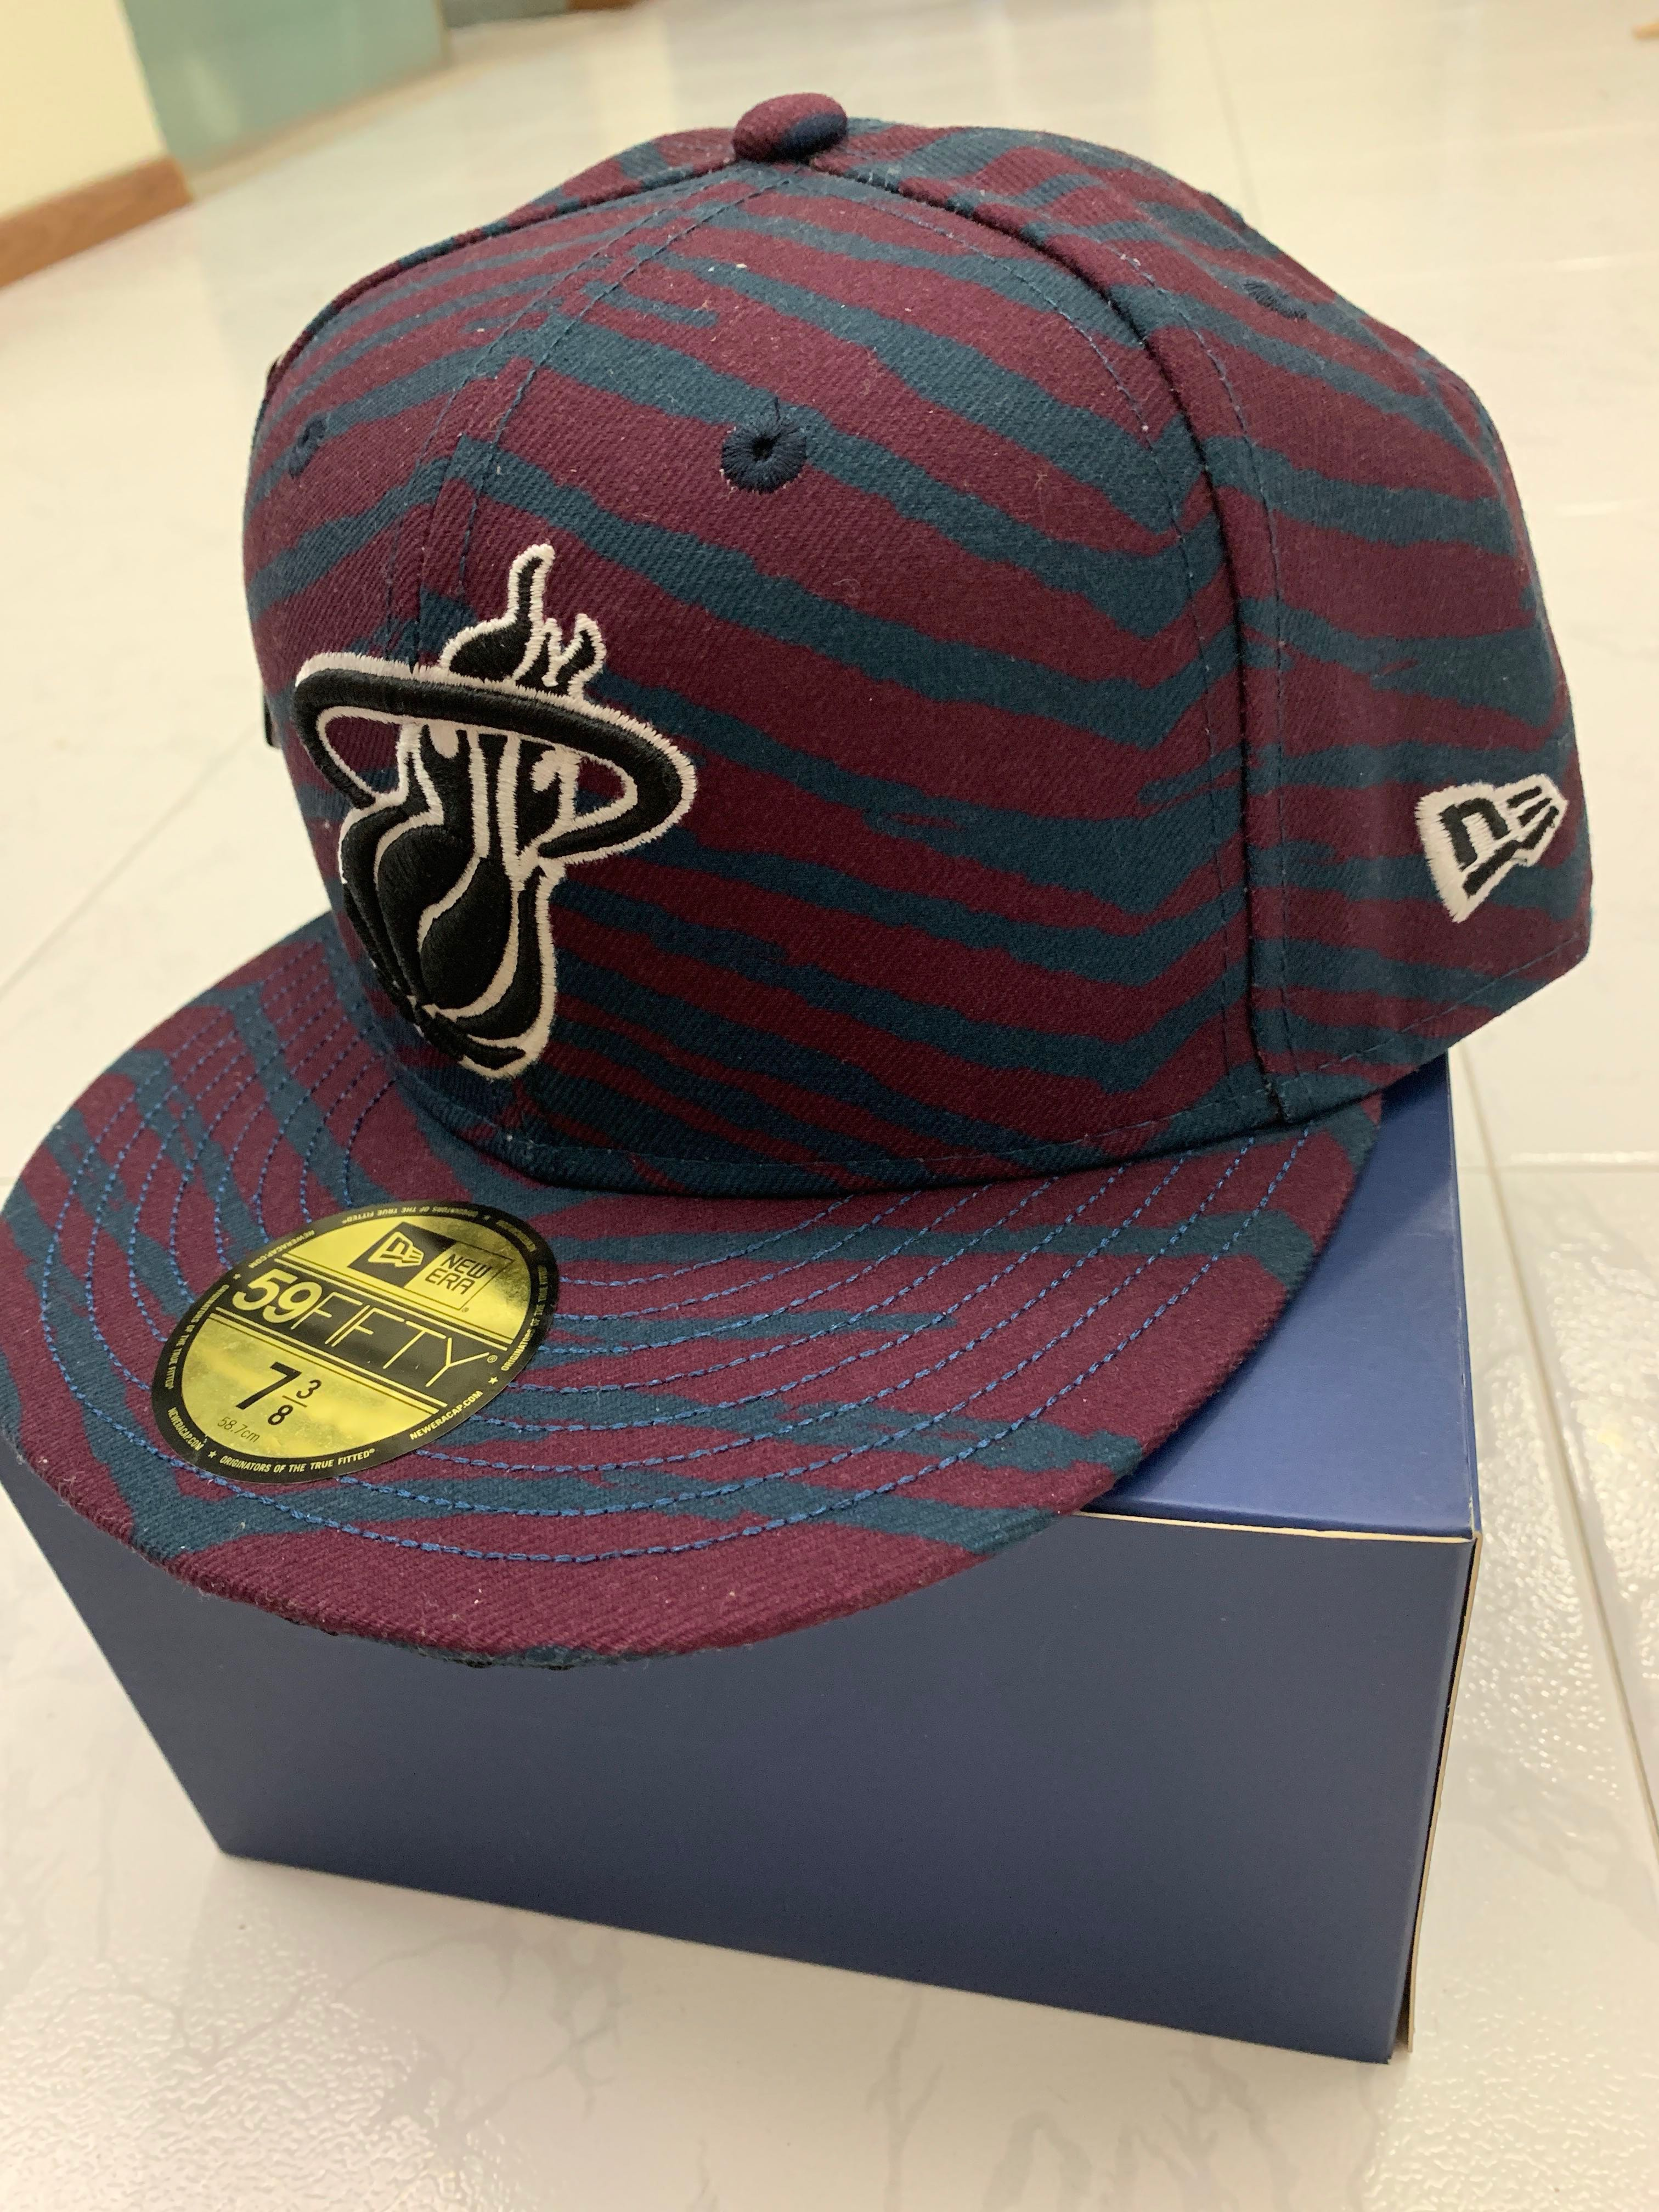 d5ce712e130 NBA heat cap by new era